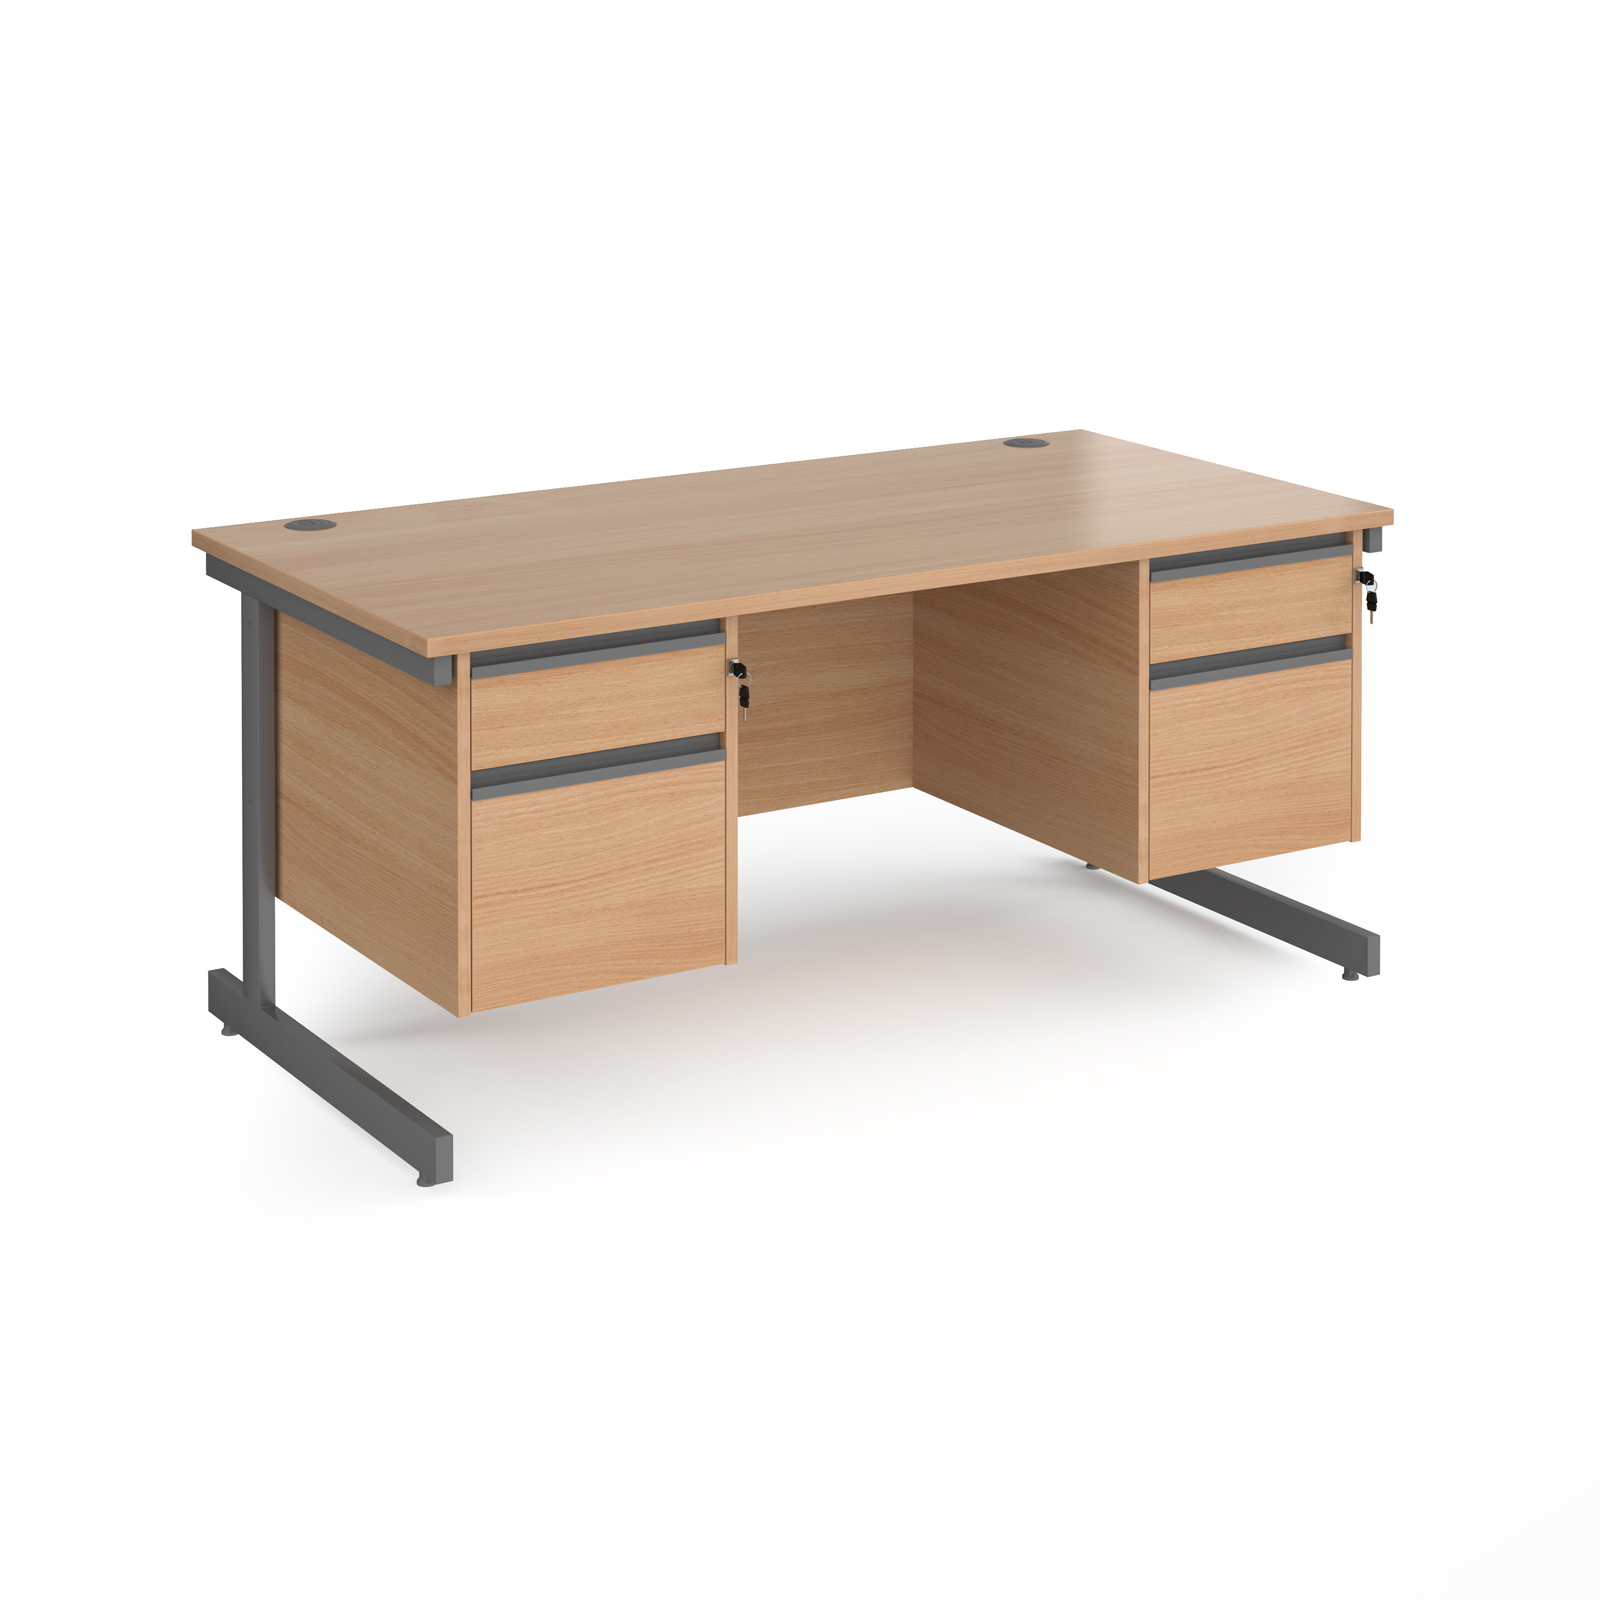 Contract 25 cantilever leg straight desk with 2 and 2 drawer peds